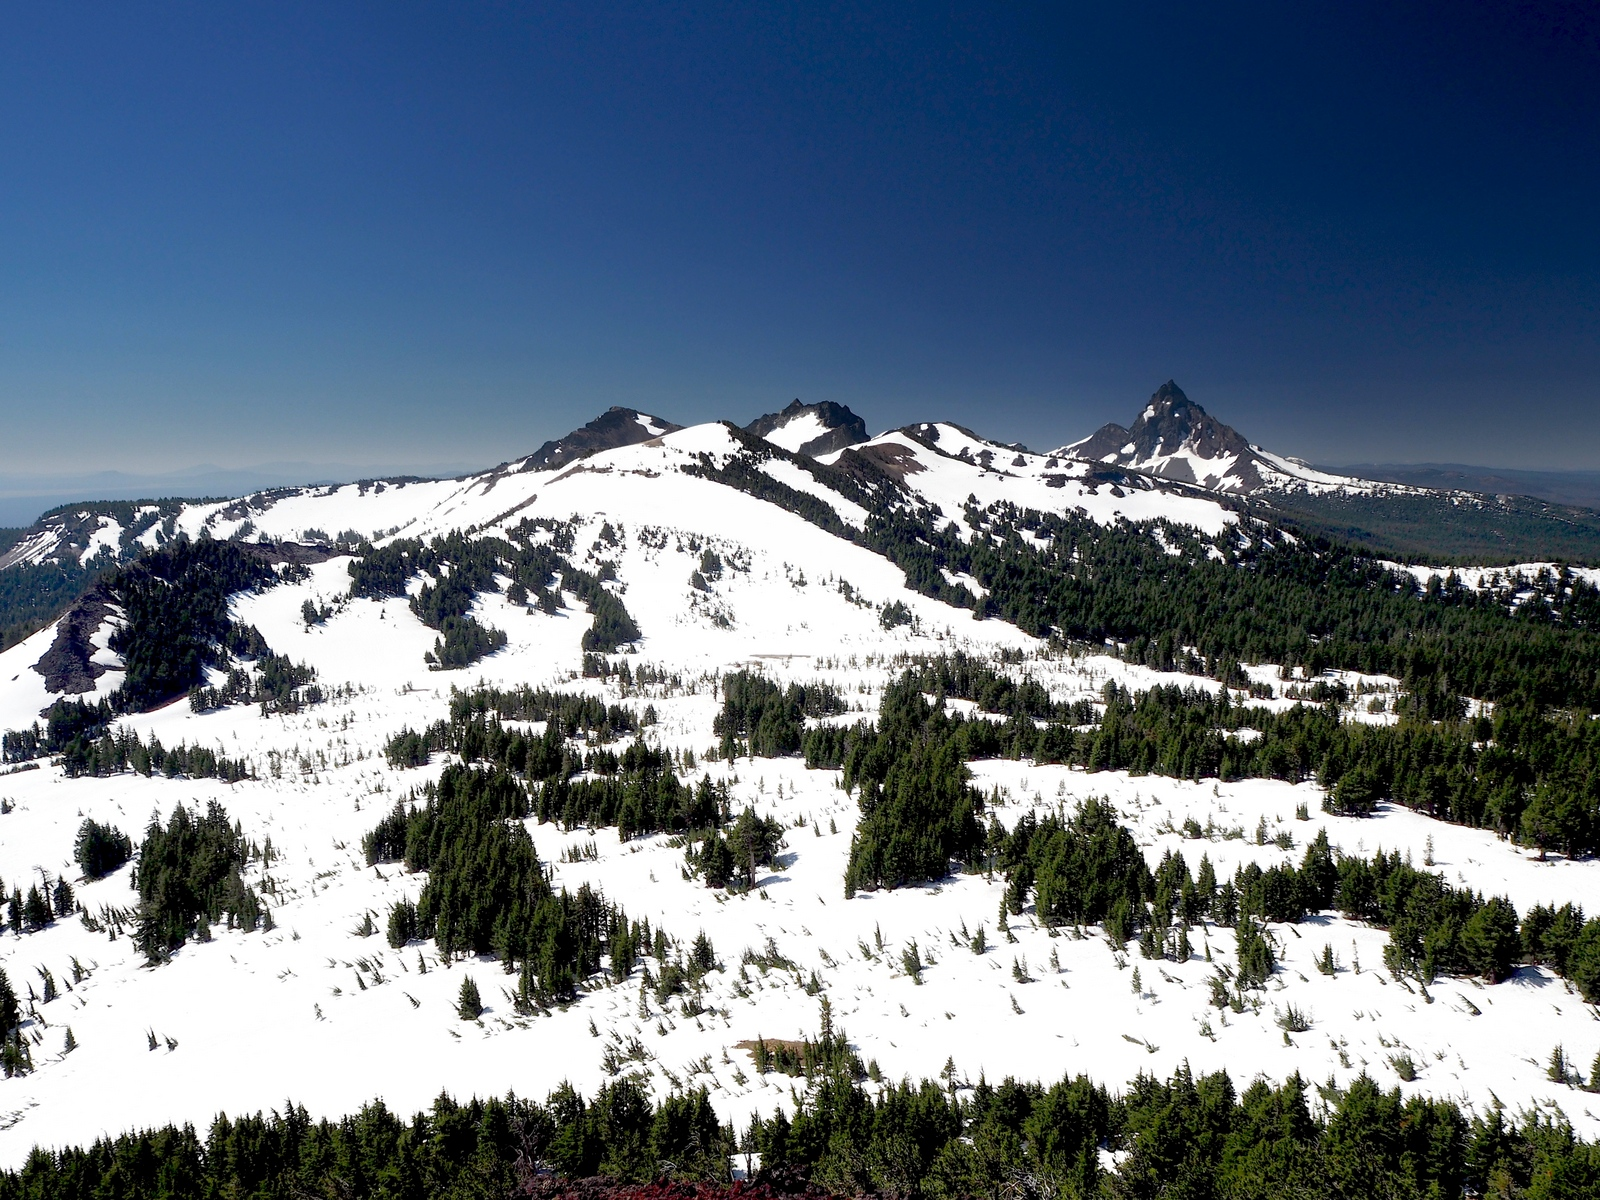 Tipsoo Peak Mount Thielsen Wilderness Oregon